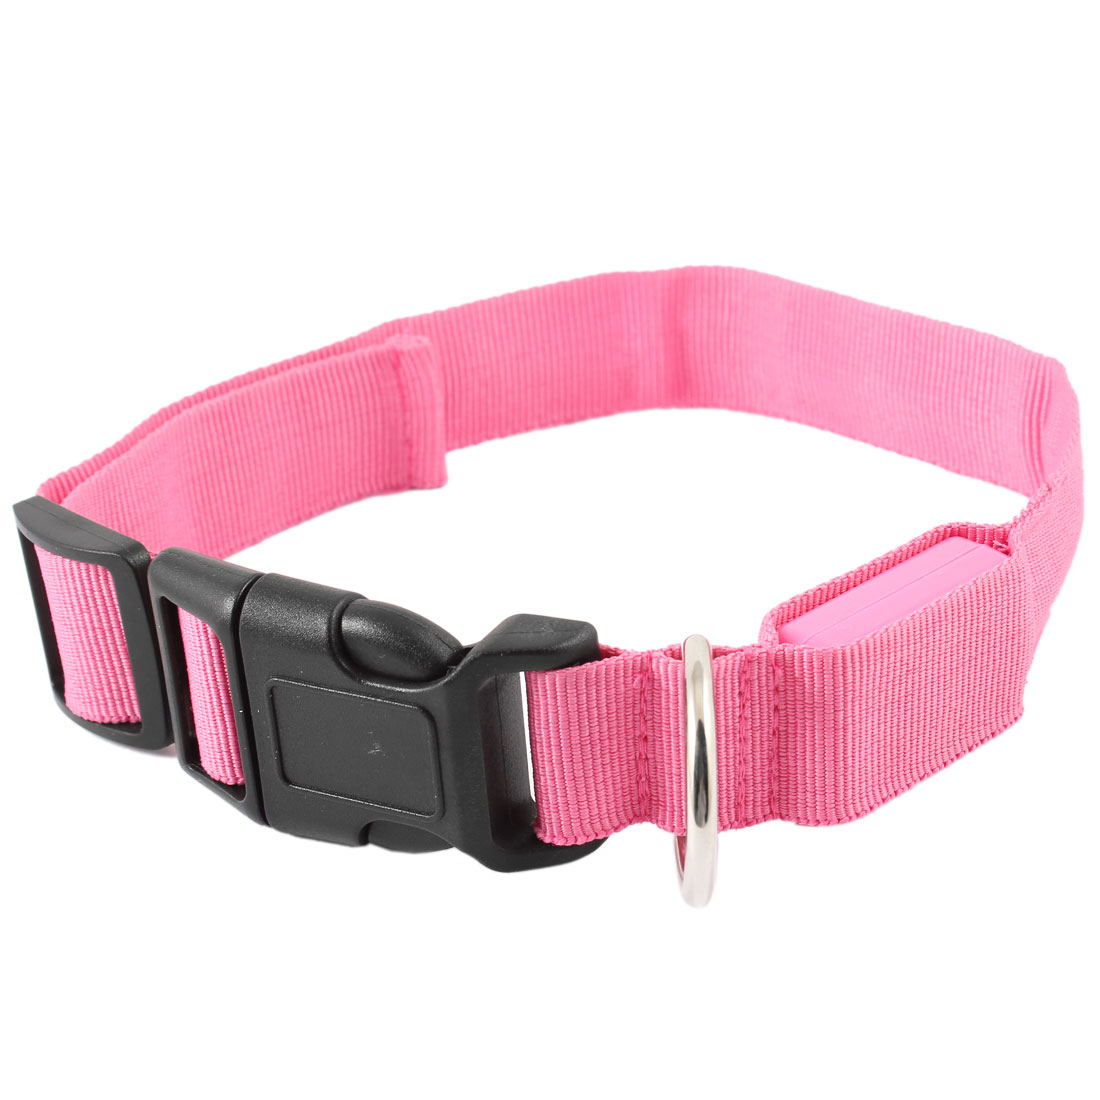 Black Side Buckle Adjustable 3 Modes 5 LEDs Red Light Pet Dog Yorkie Maltese Pomeranian Safety Collar Fuchsia M